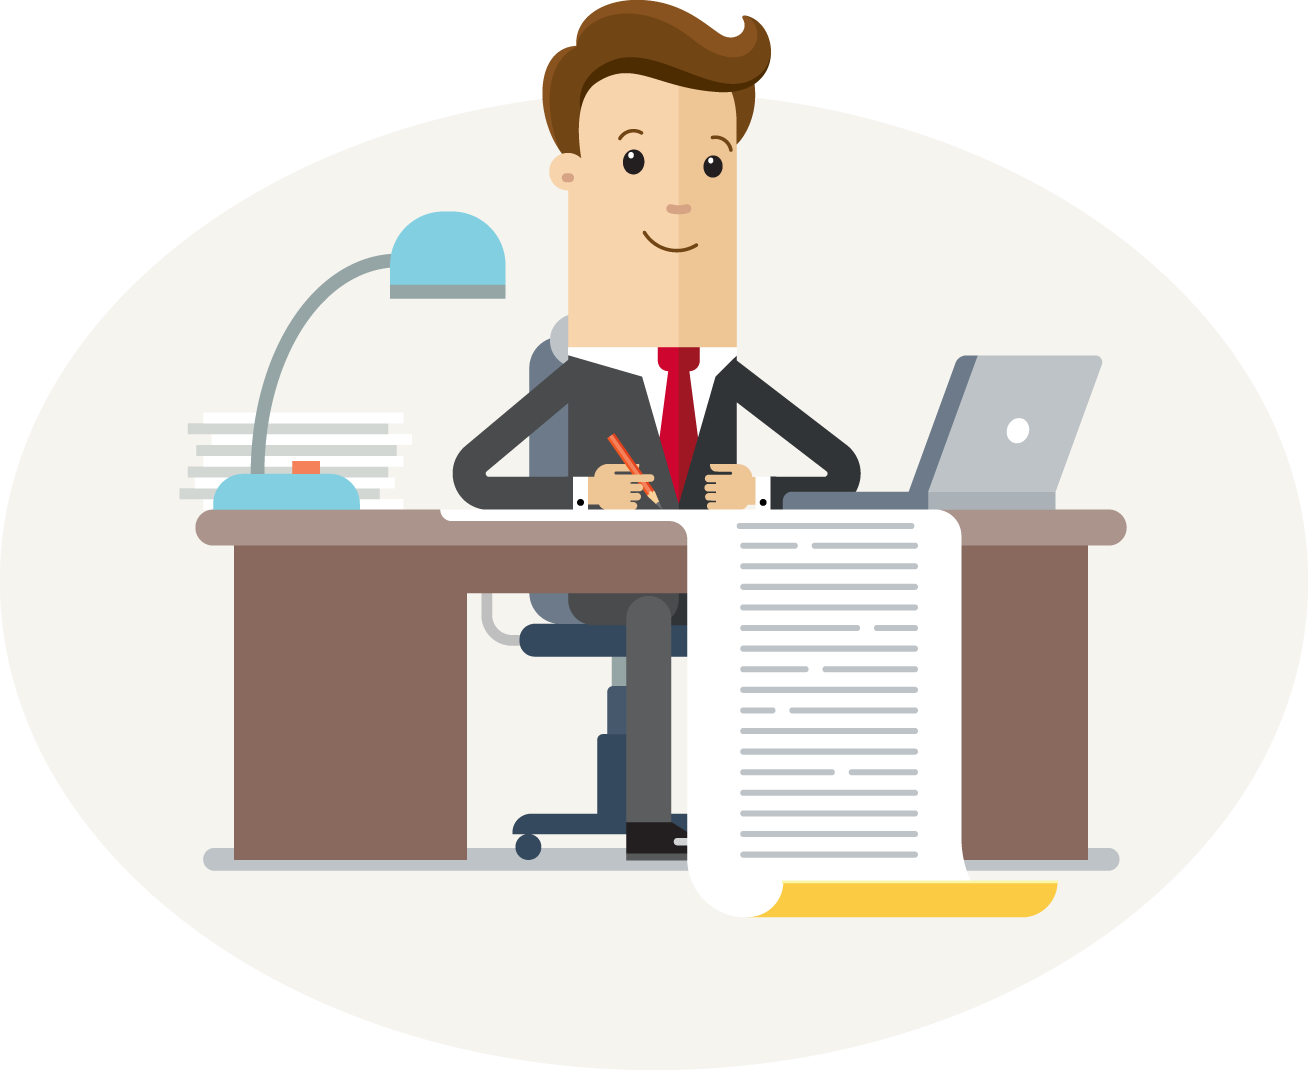 An illustration of an accountant sitting at a desk